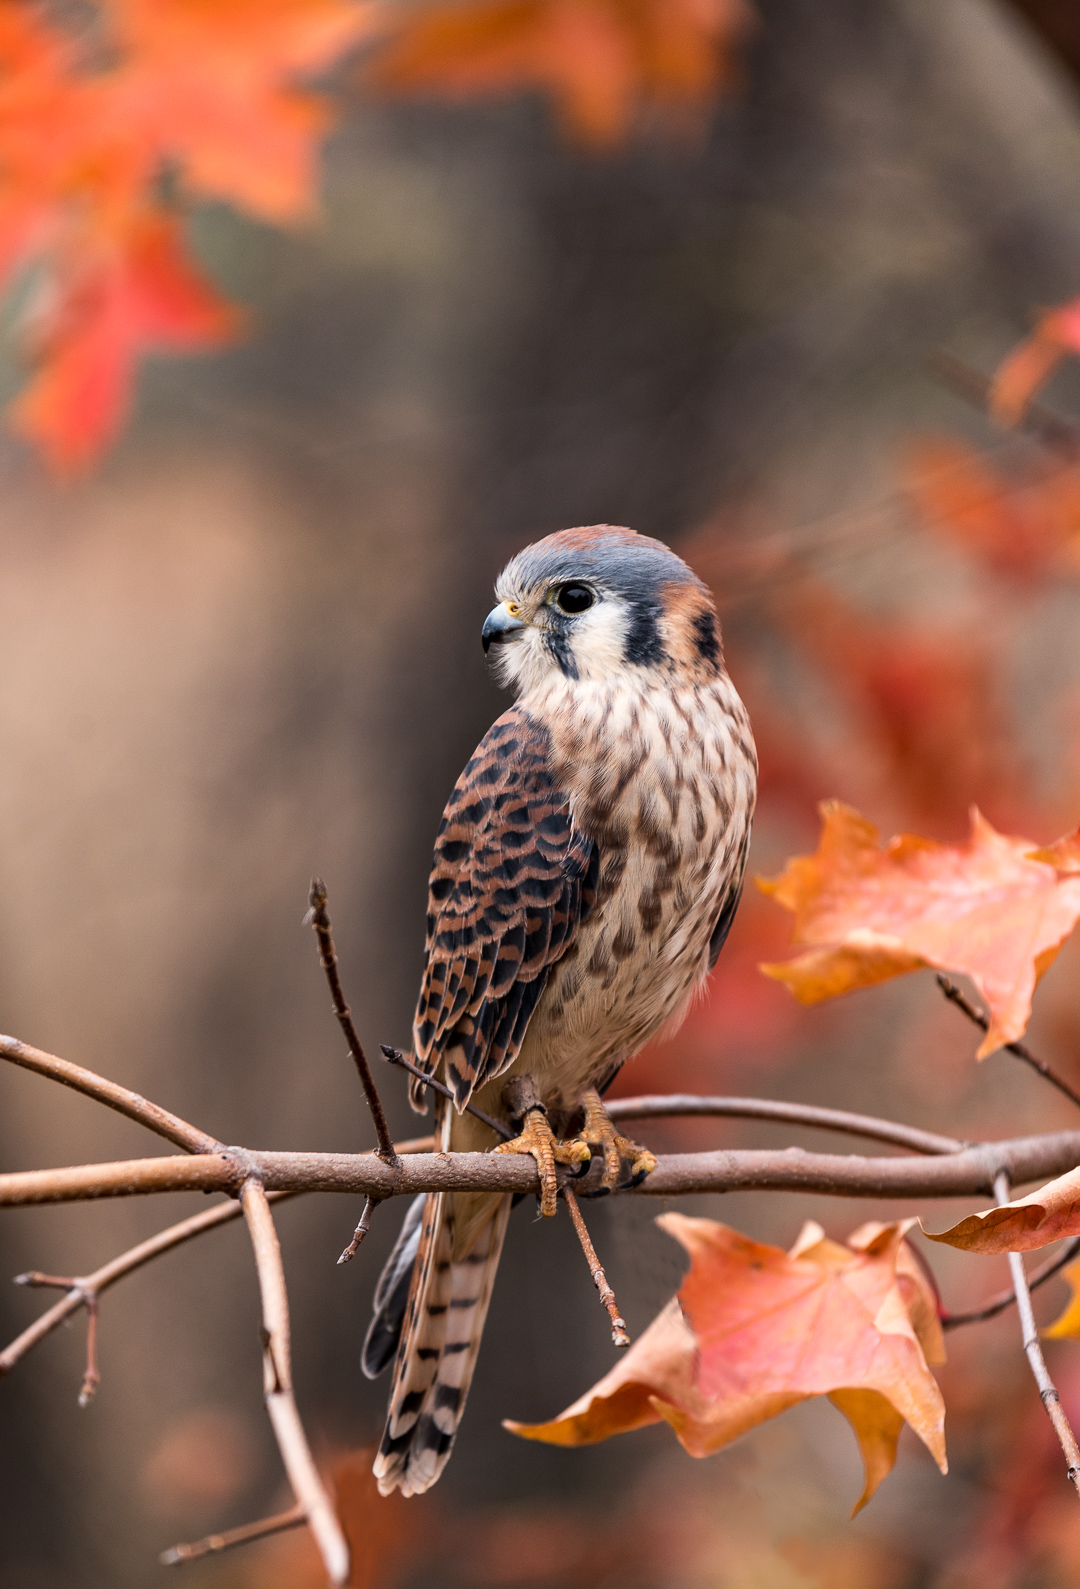 American Kestrel - Color Print(Open) - Name Withheld Per Request